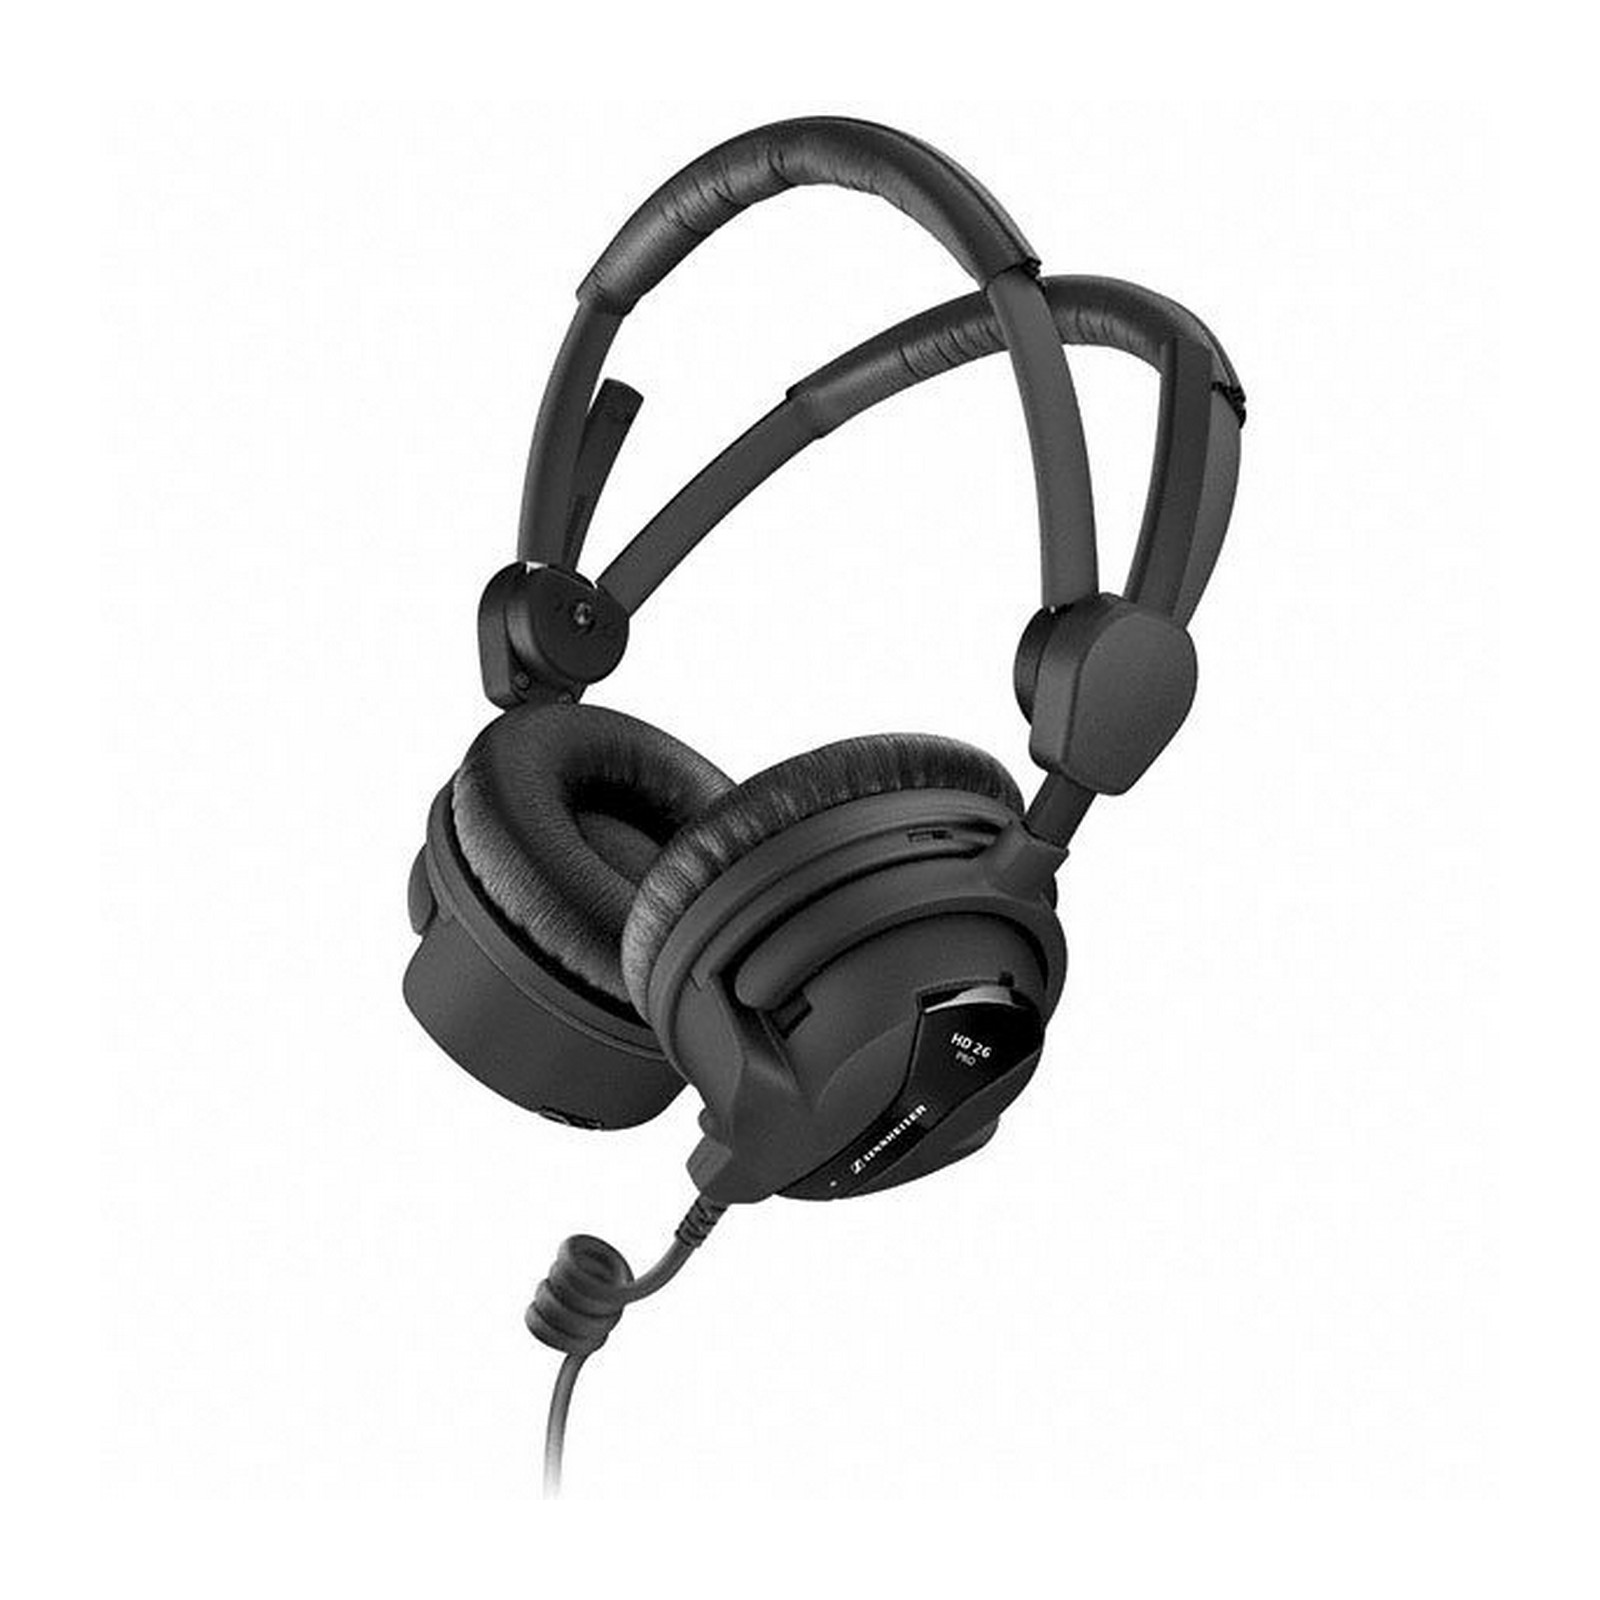 Sennheiser HD 26 Pro | Professional Monitoring Headphone for Radio and Television Broadcast Production by Sennheiser